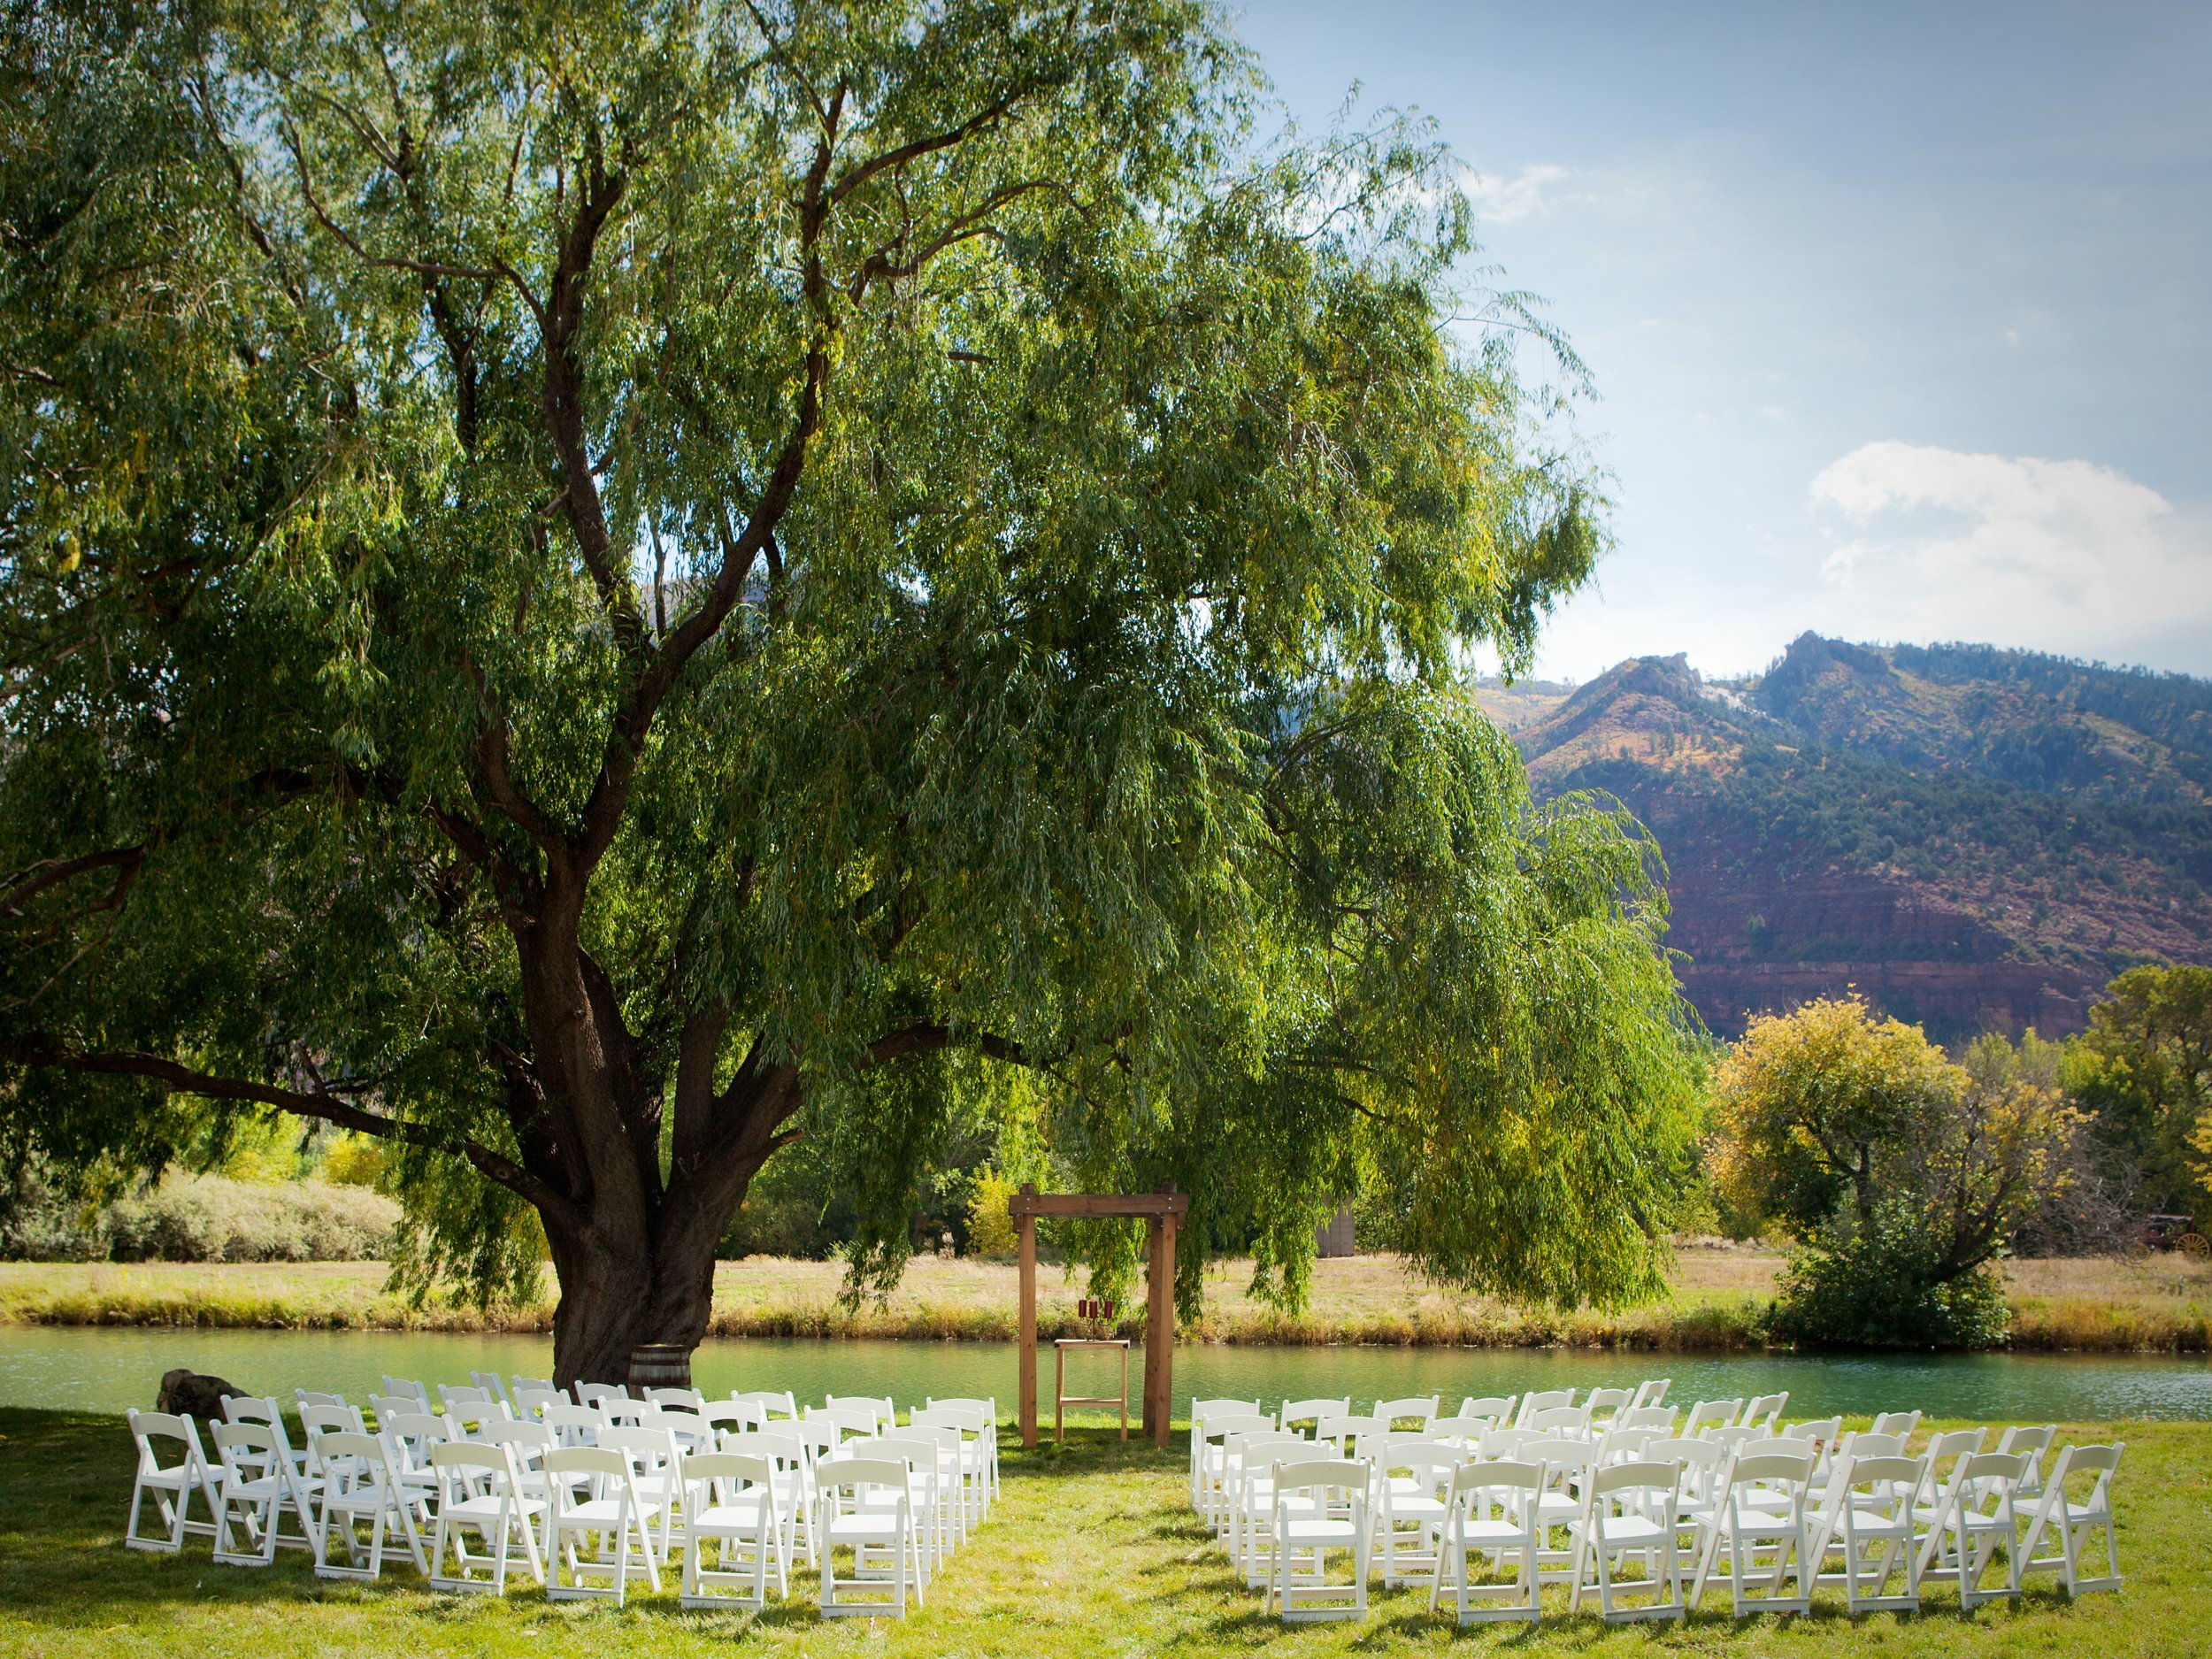 A pondside wedding in the warmth of the sun.